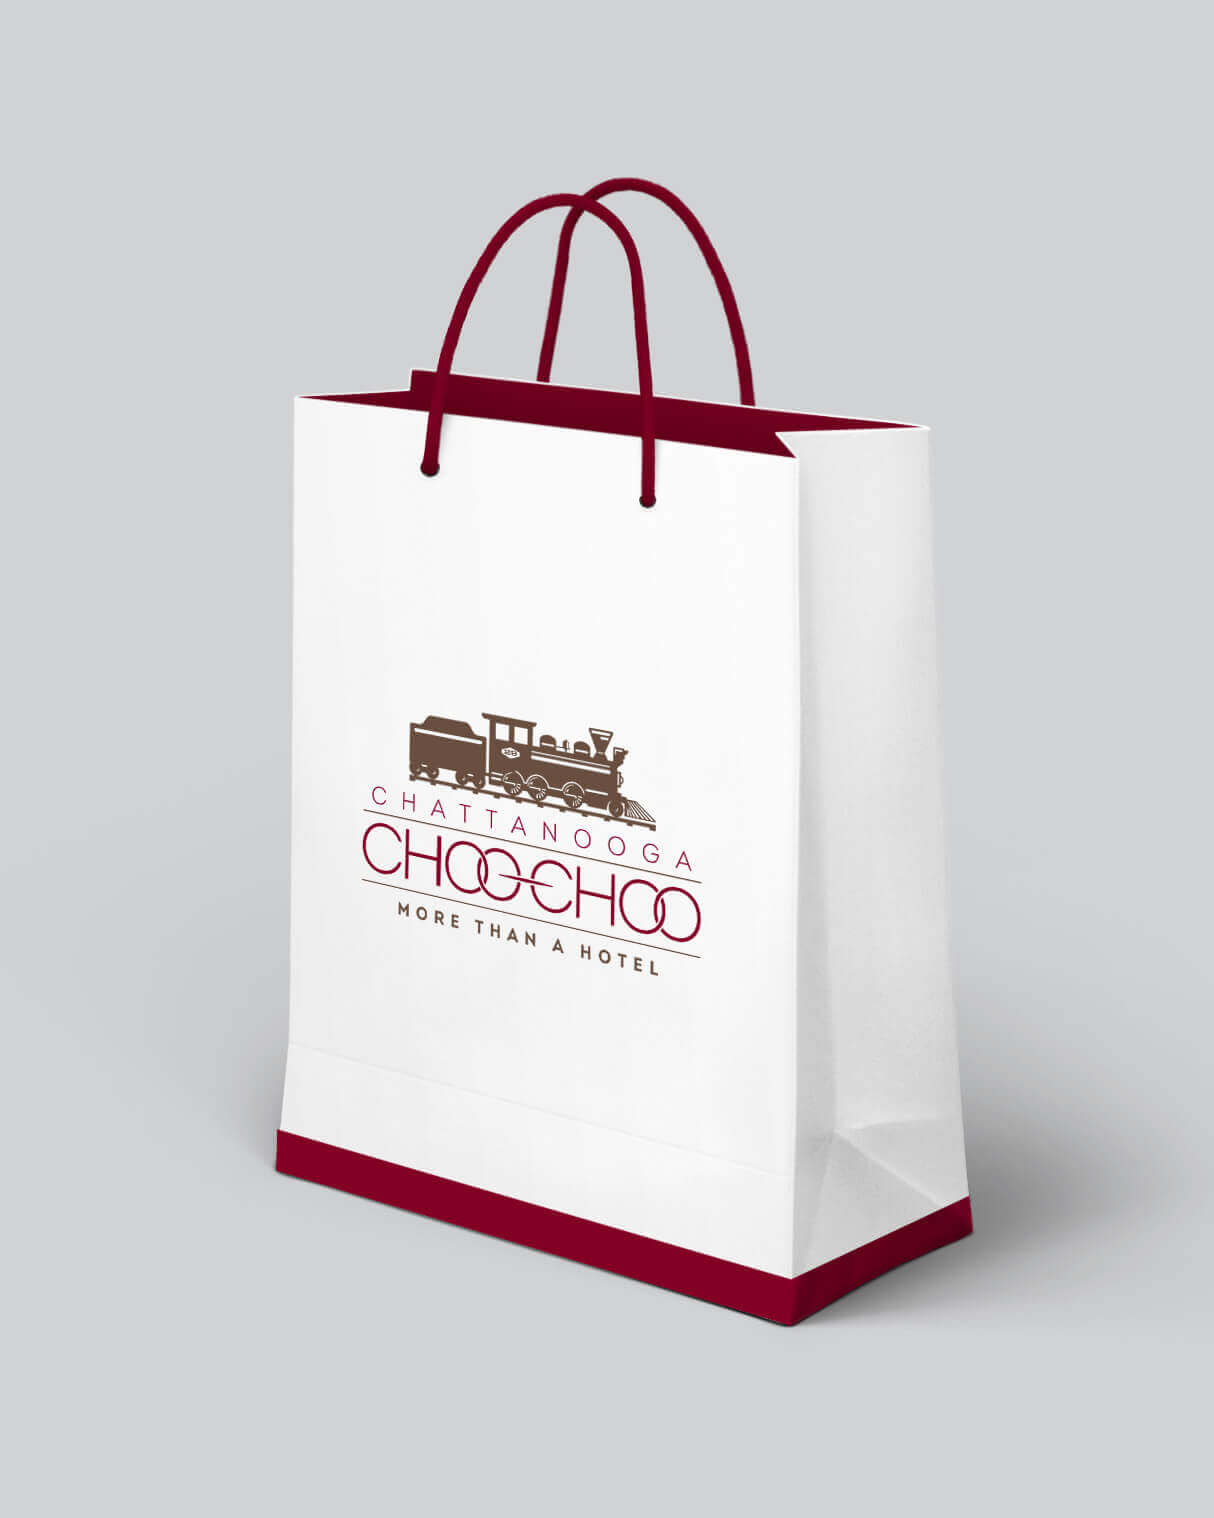 chattanooga-choo-choo-shopping-bag.jpg